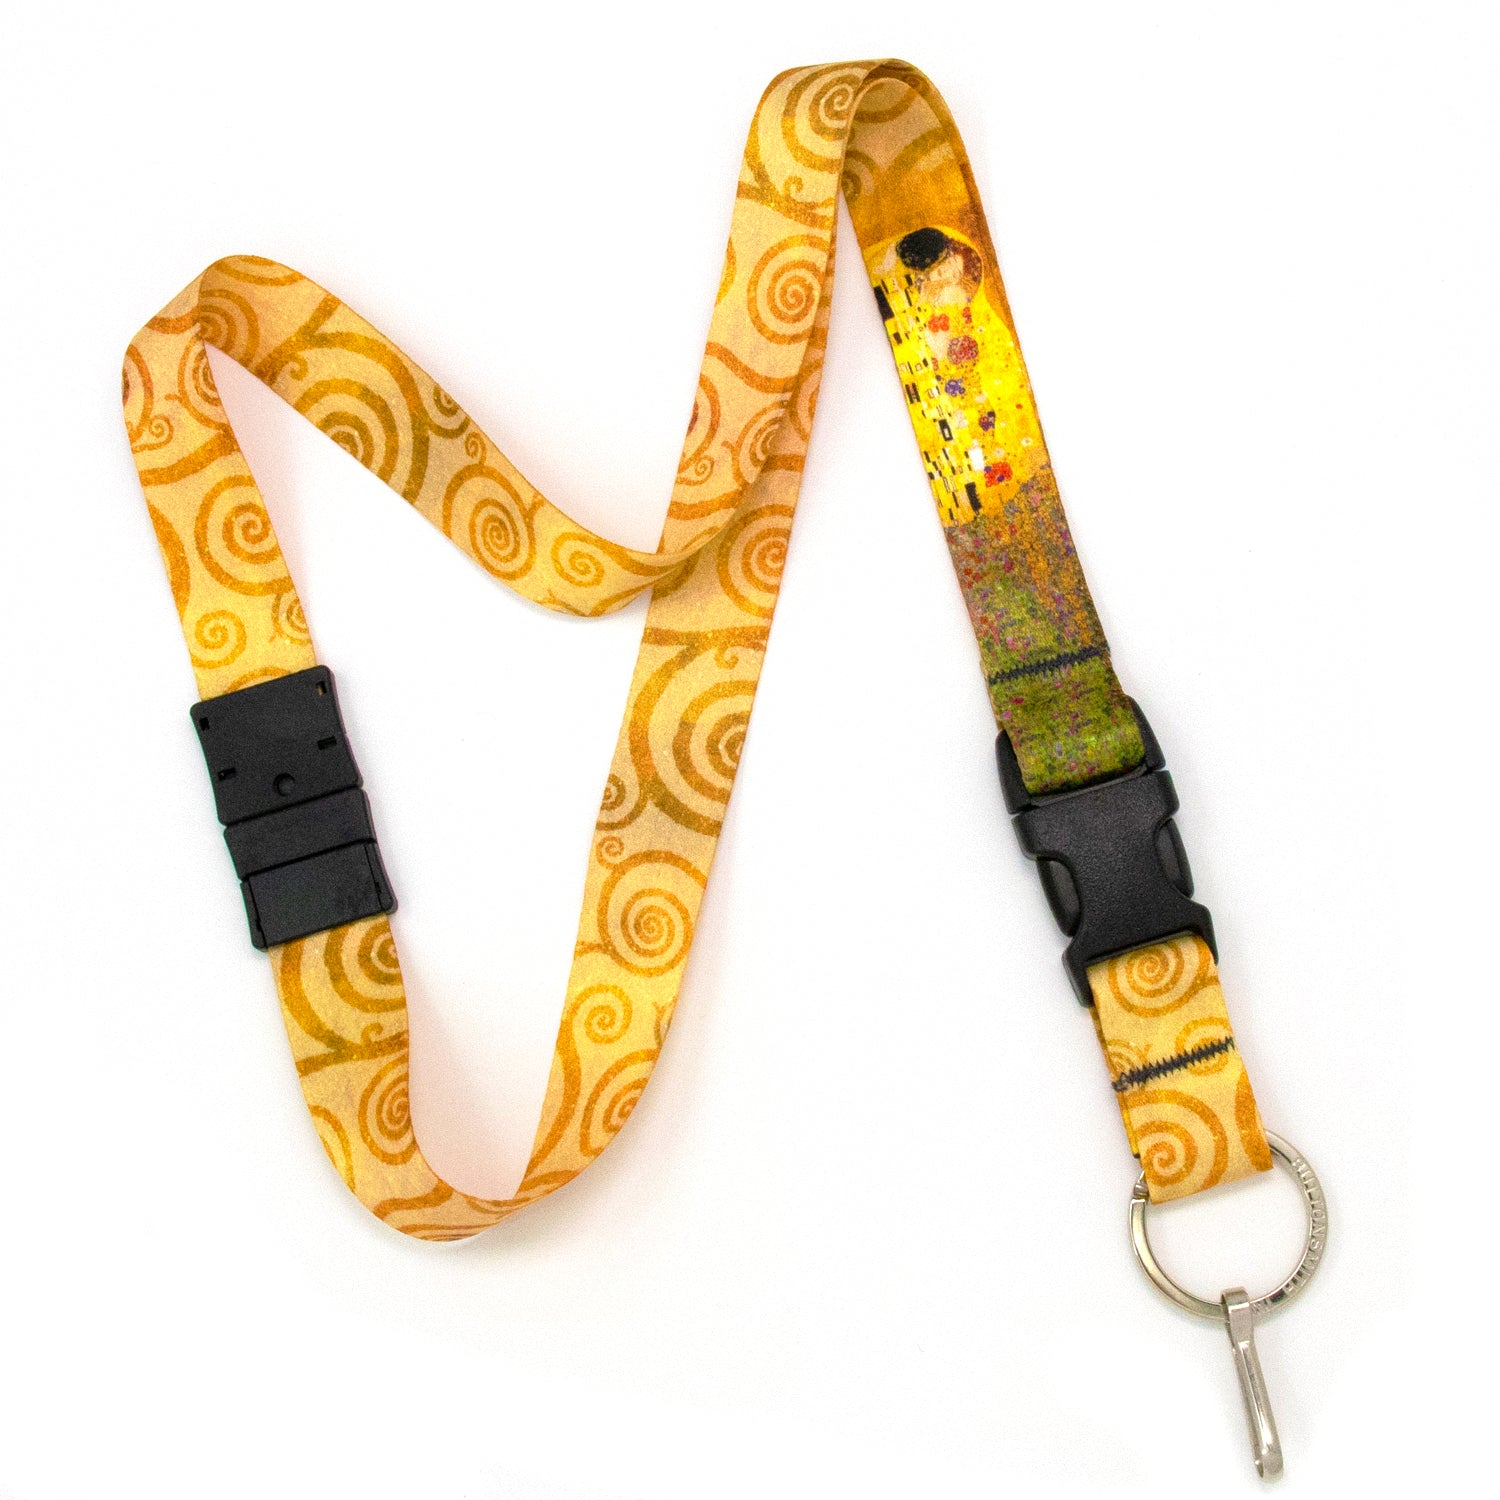 Buttonsmith Gustav Klimt Kiss Breakaway Lanyard - Made in USA